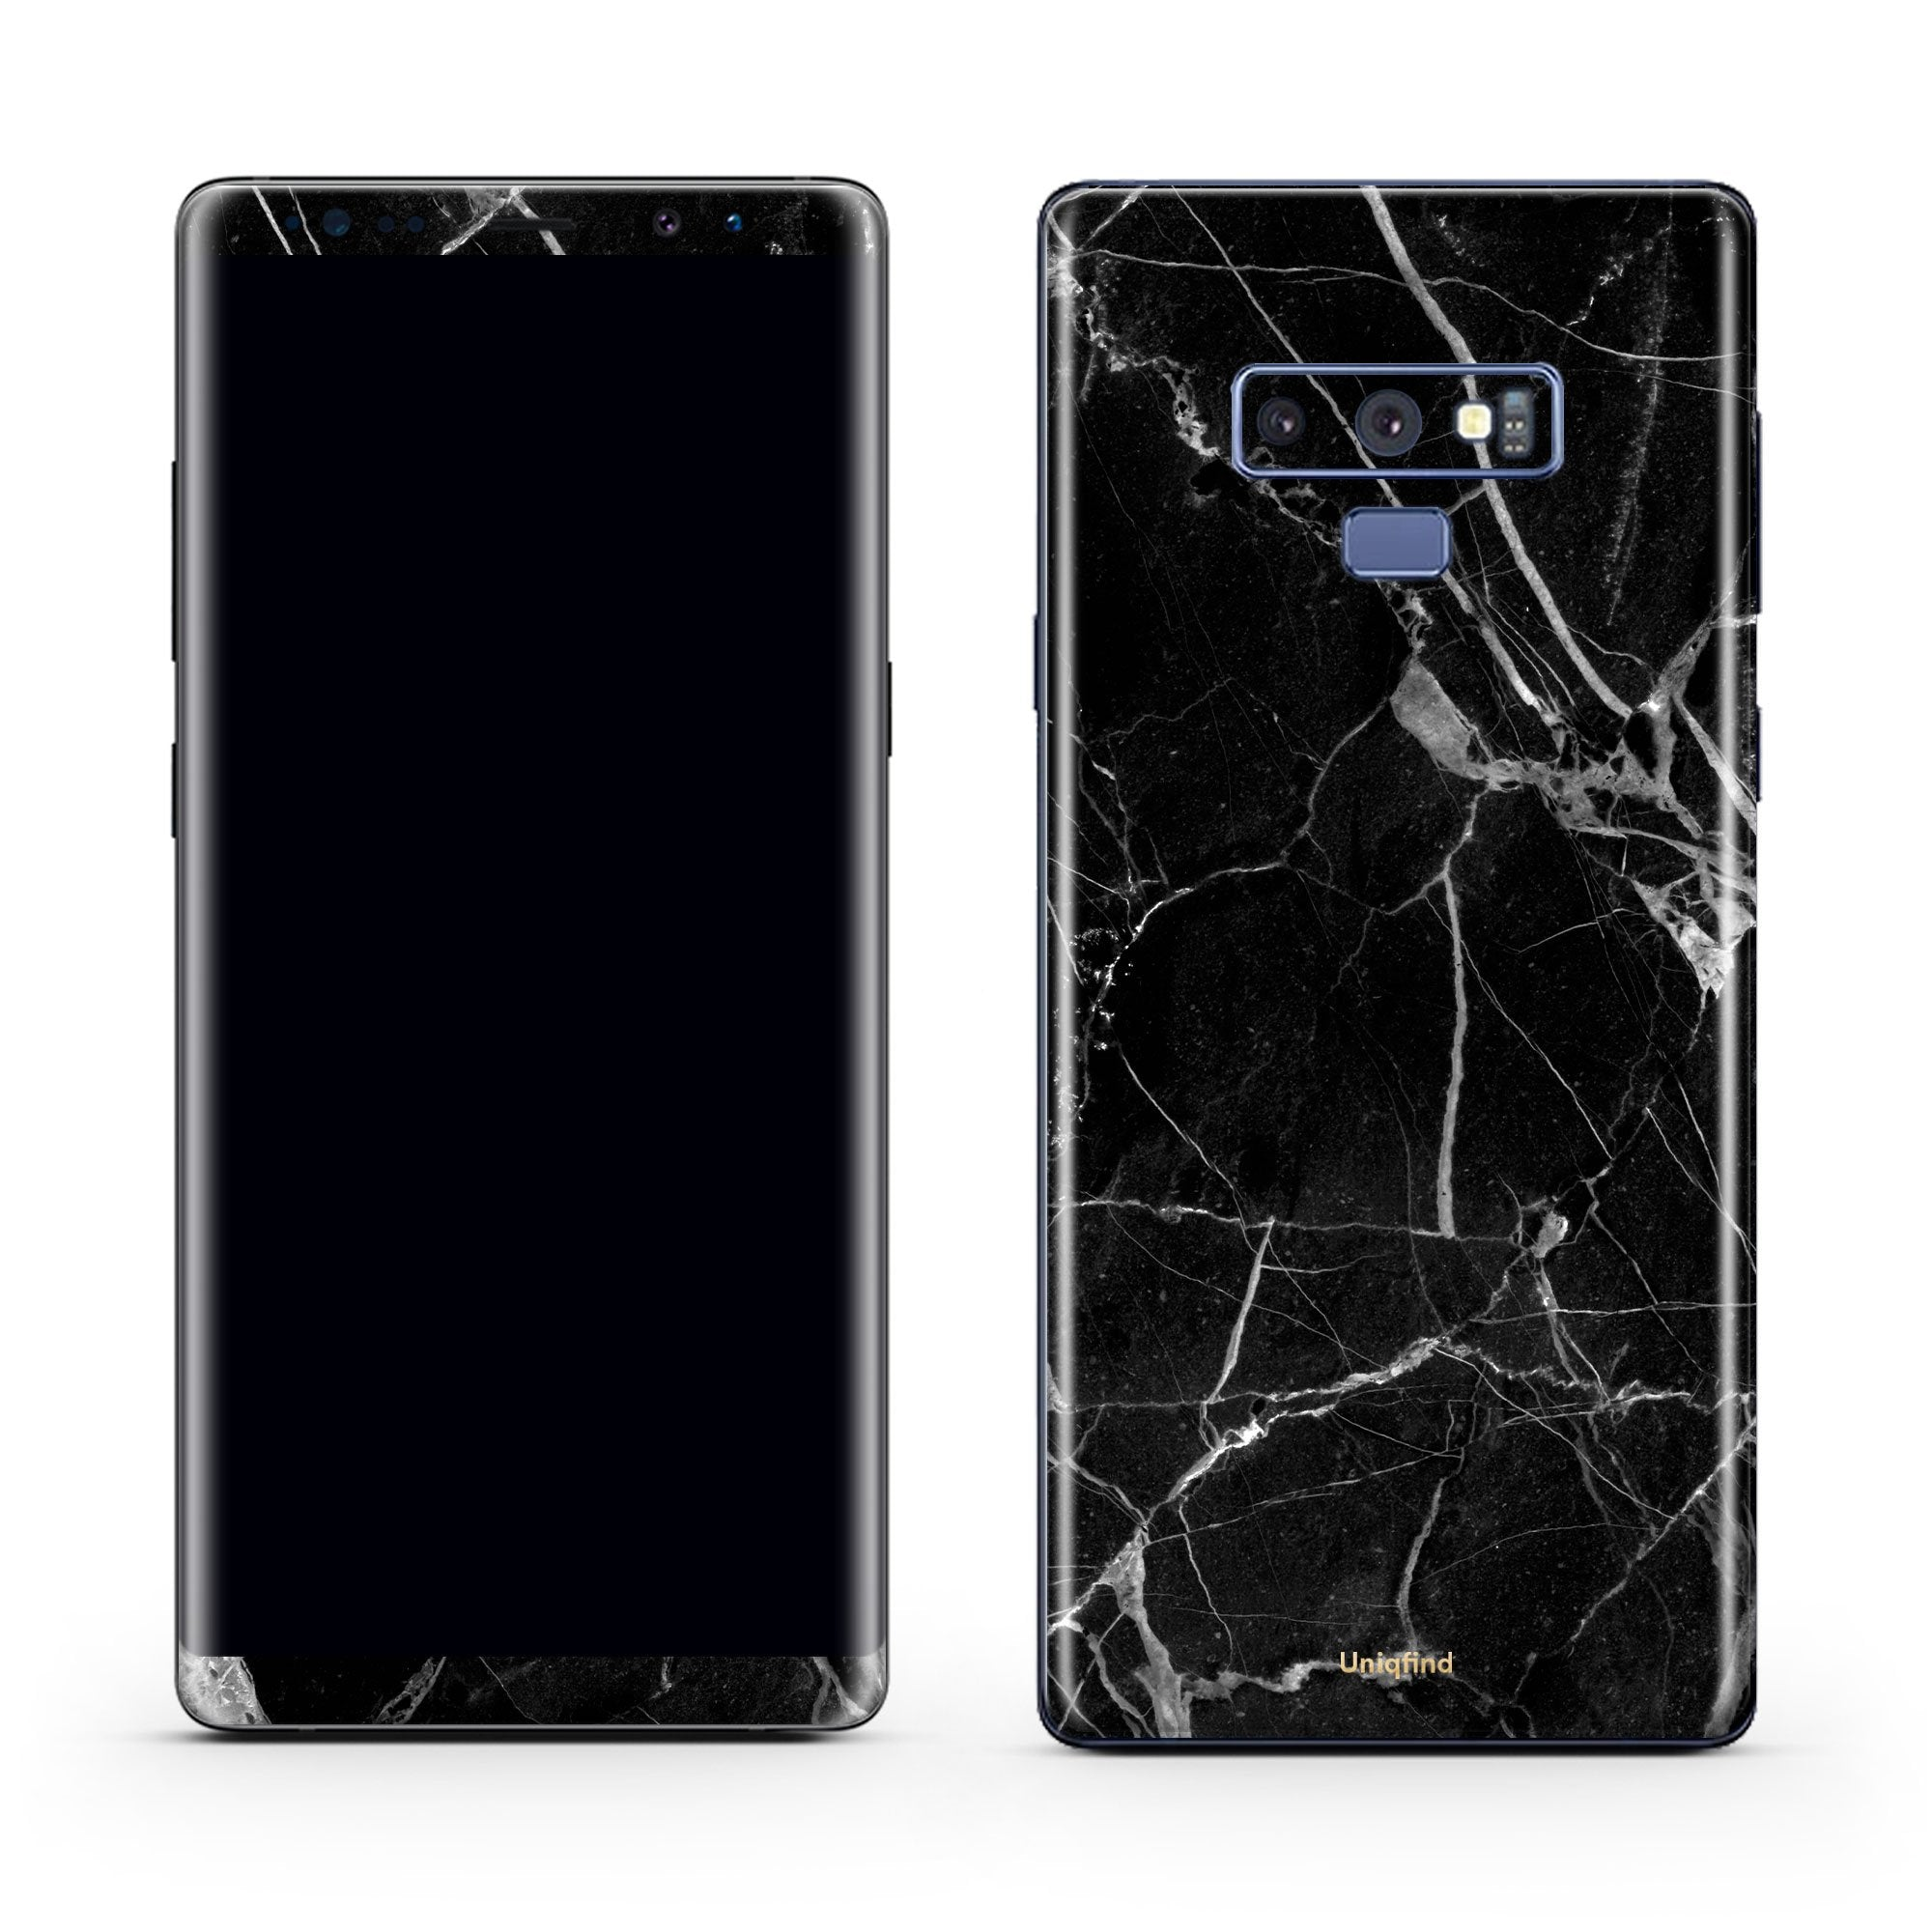 Black Hyper Marble Galaxy Note 9 Skin + Case